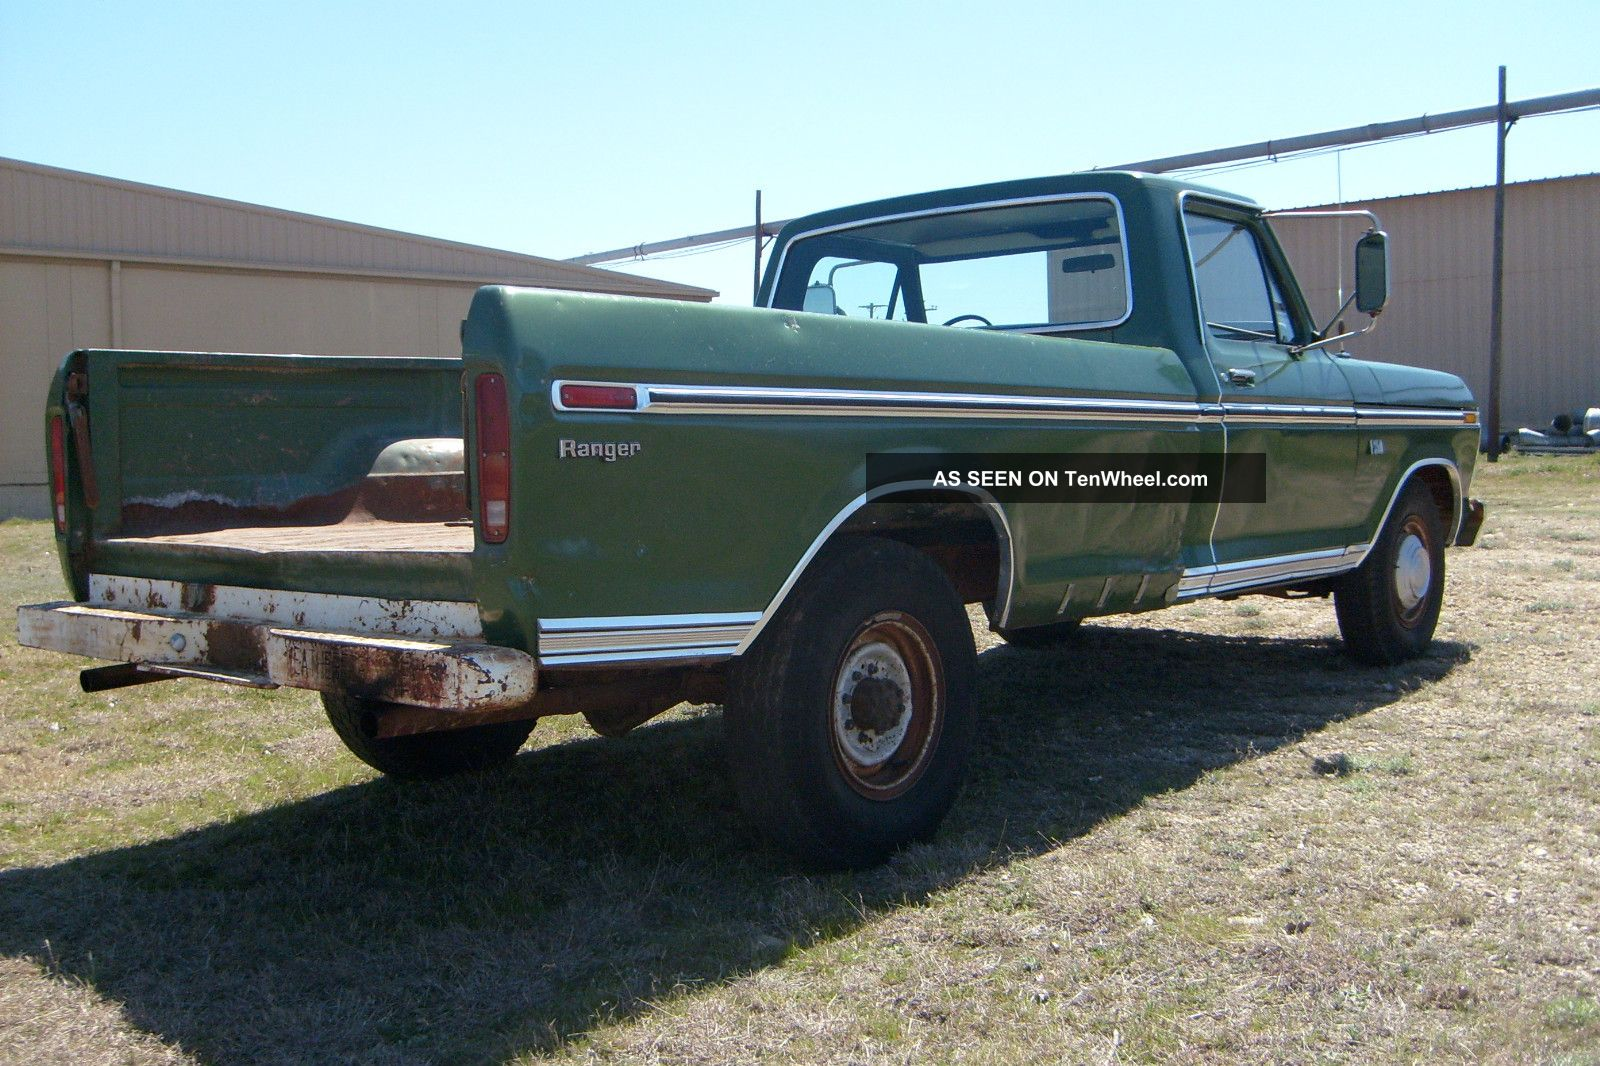 hight resolution of 1974 ford f250 ranger camper special 460 engine 1969 ford f 250 camper special ford